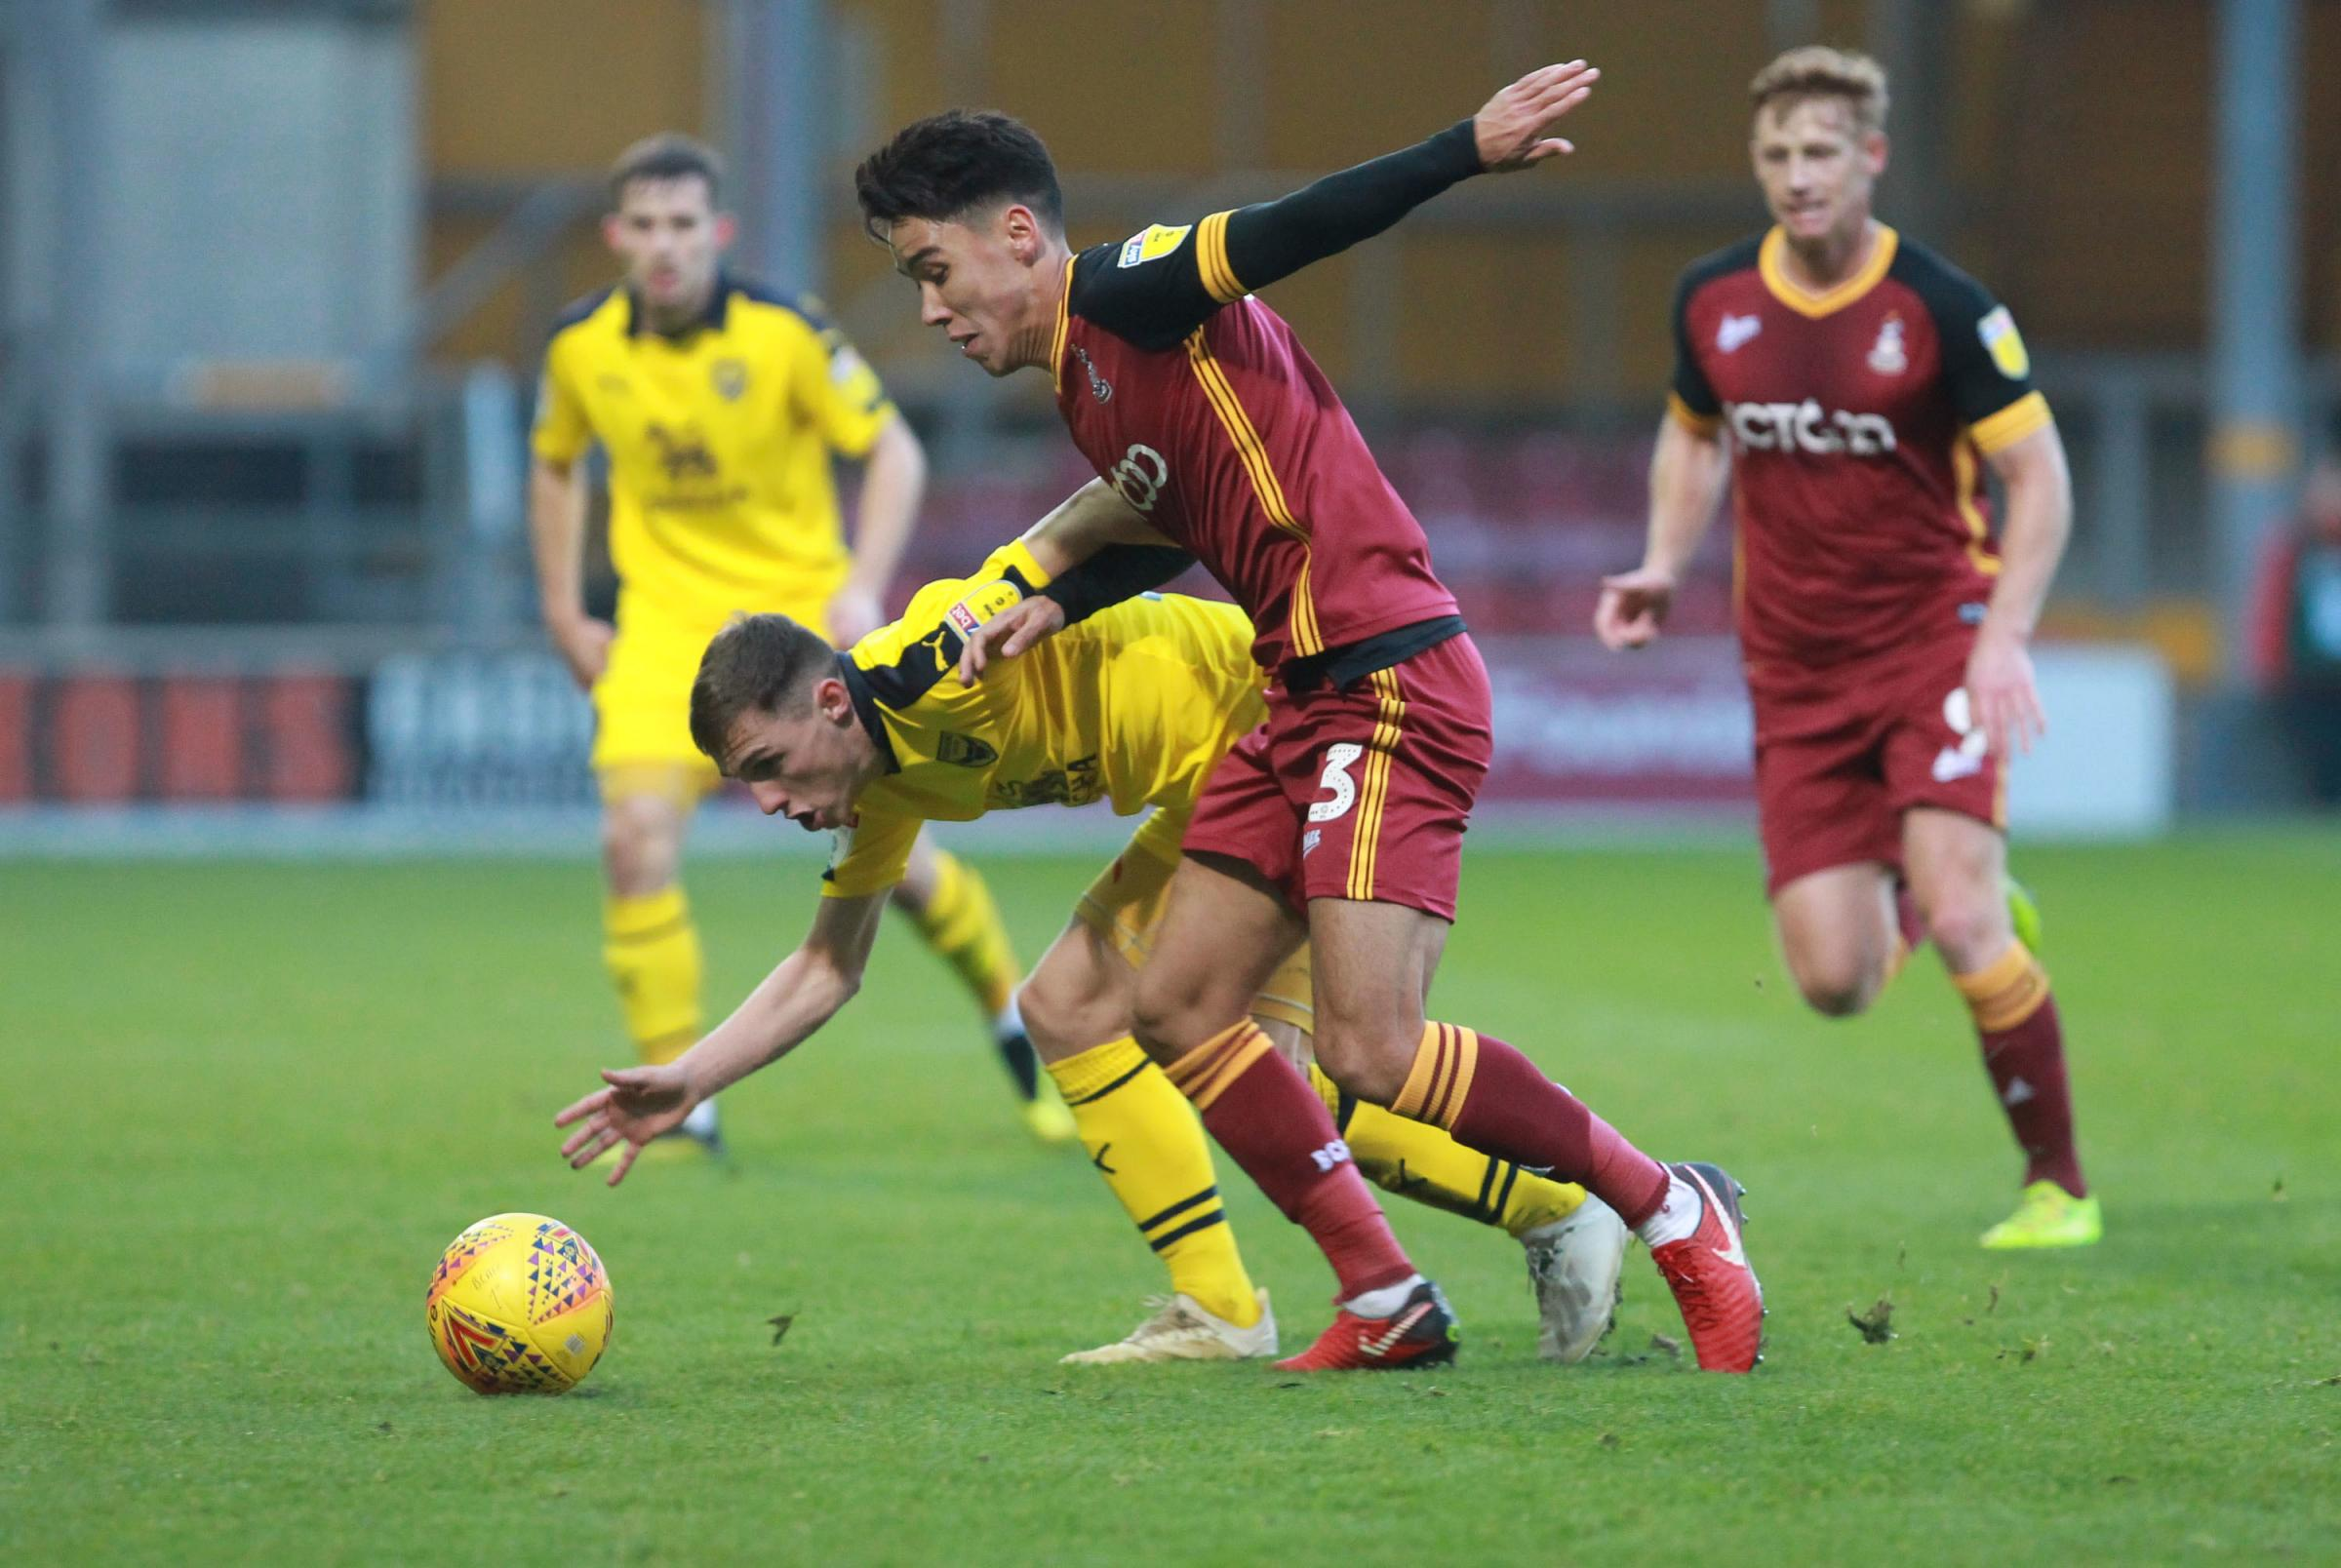 Bradford City in action against Oxford United earlier this season. Picture: Richard Parkes.